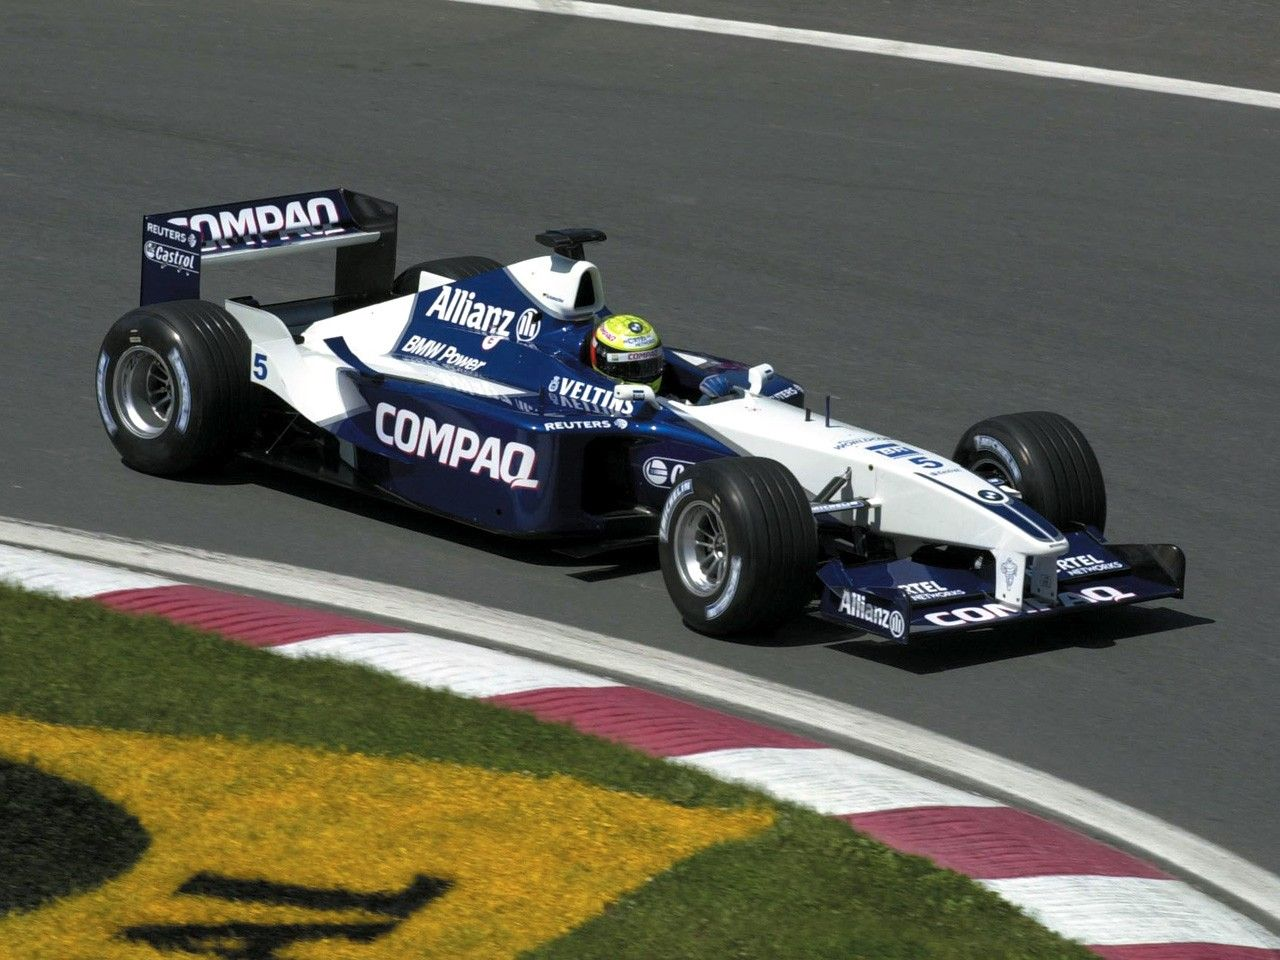 Williams fw23 photo - 4